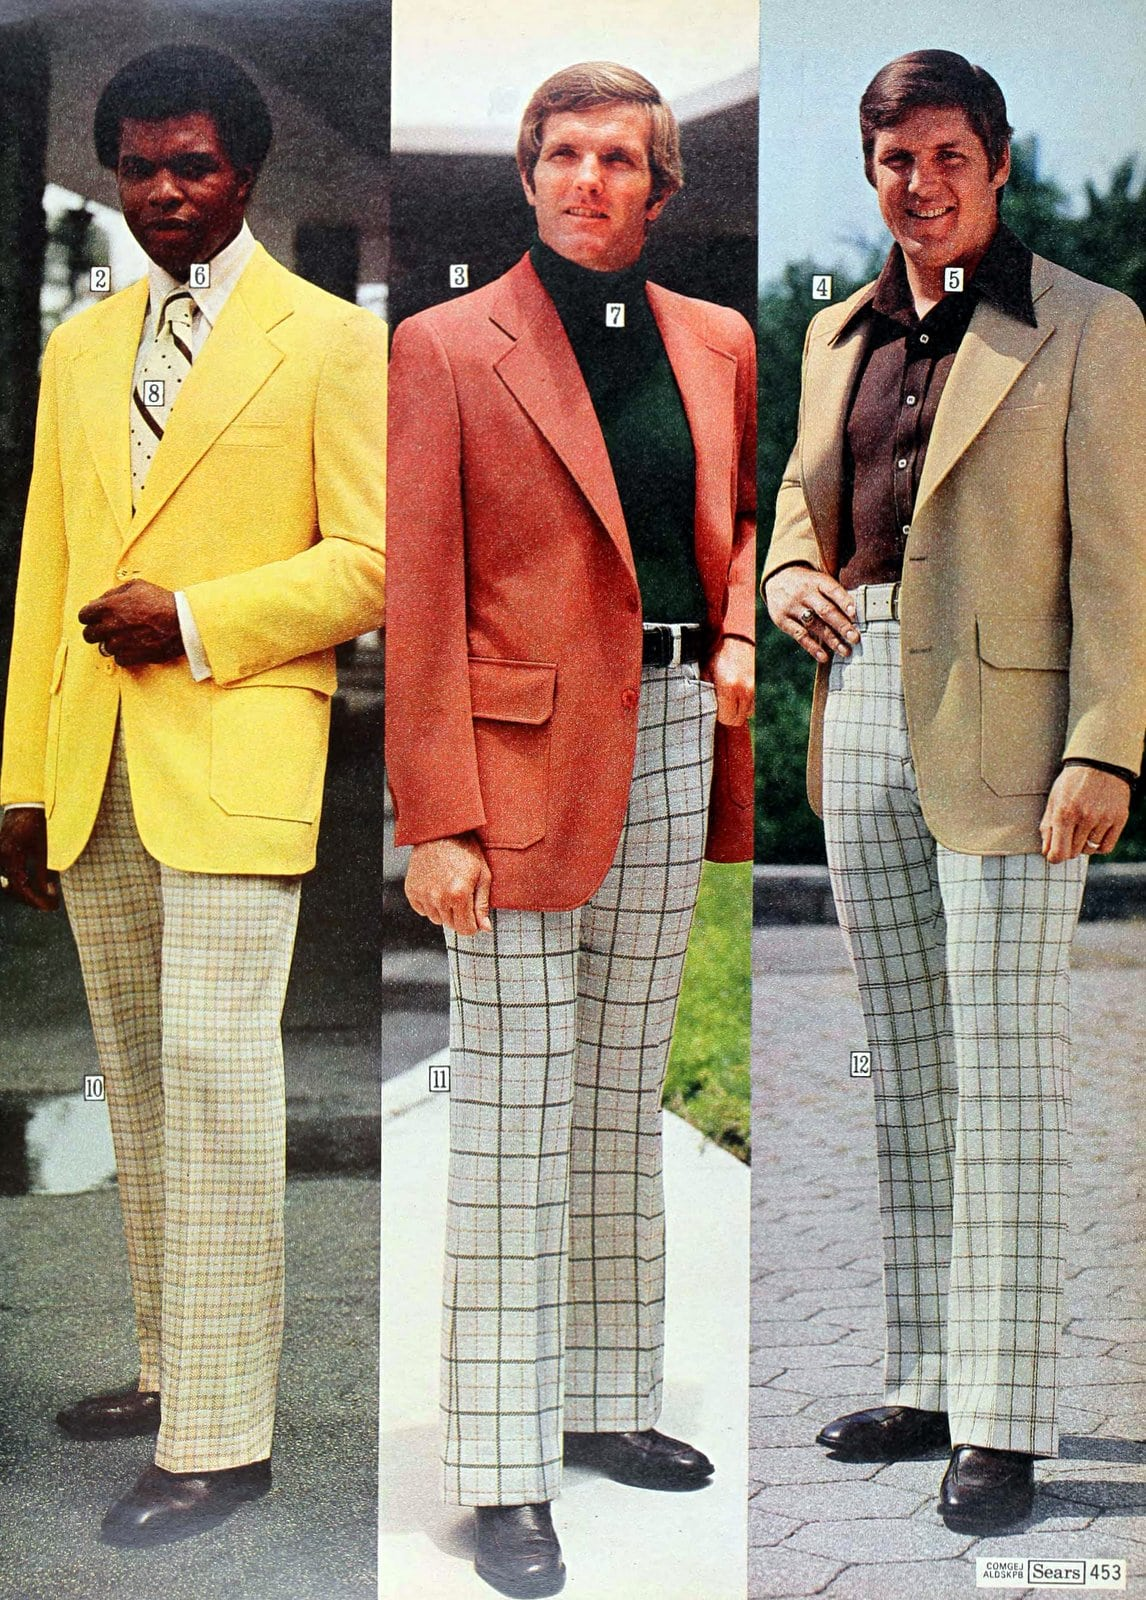 Sears suits and menswear from the 1970s (2)